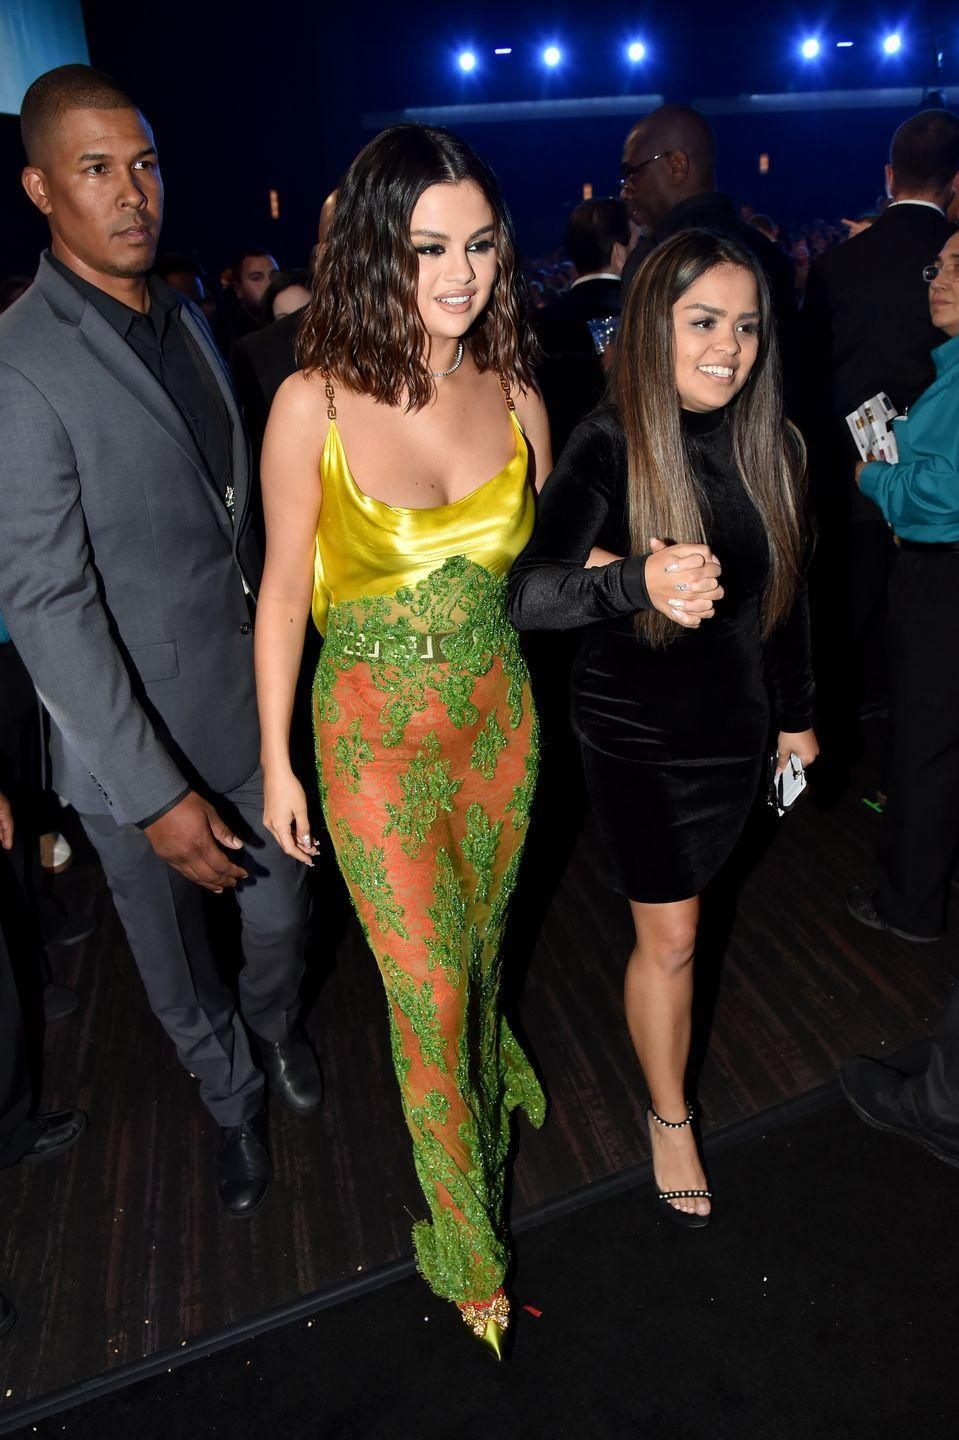 "<p>Heading back to her seat after opening the 2019 American Music Awards in a <a href=""https://www.elle.com/culture/celebrities/a29936299/selena-gomez-fourth-amas-outfit-2019/"" rel=""nofollow noopener"" target=""_blank"" data-ylk=""slk:sneaky outfit change"" class=""link rapid-noclick-resp"">sneaky outfit change</a>.</p>"